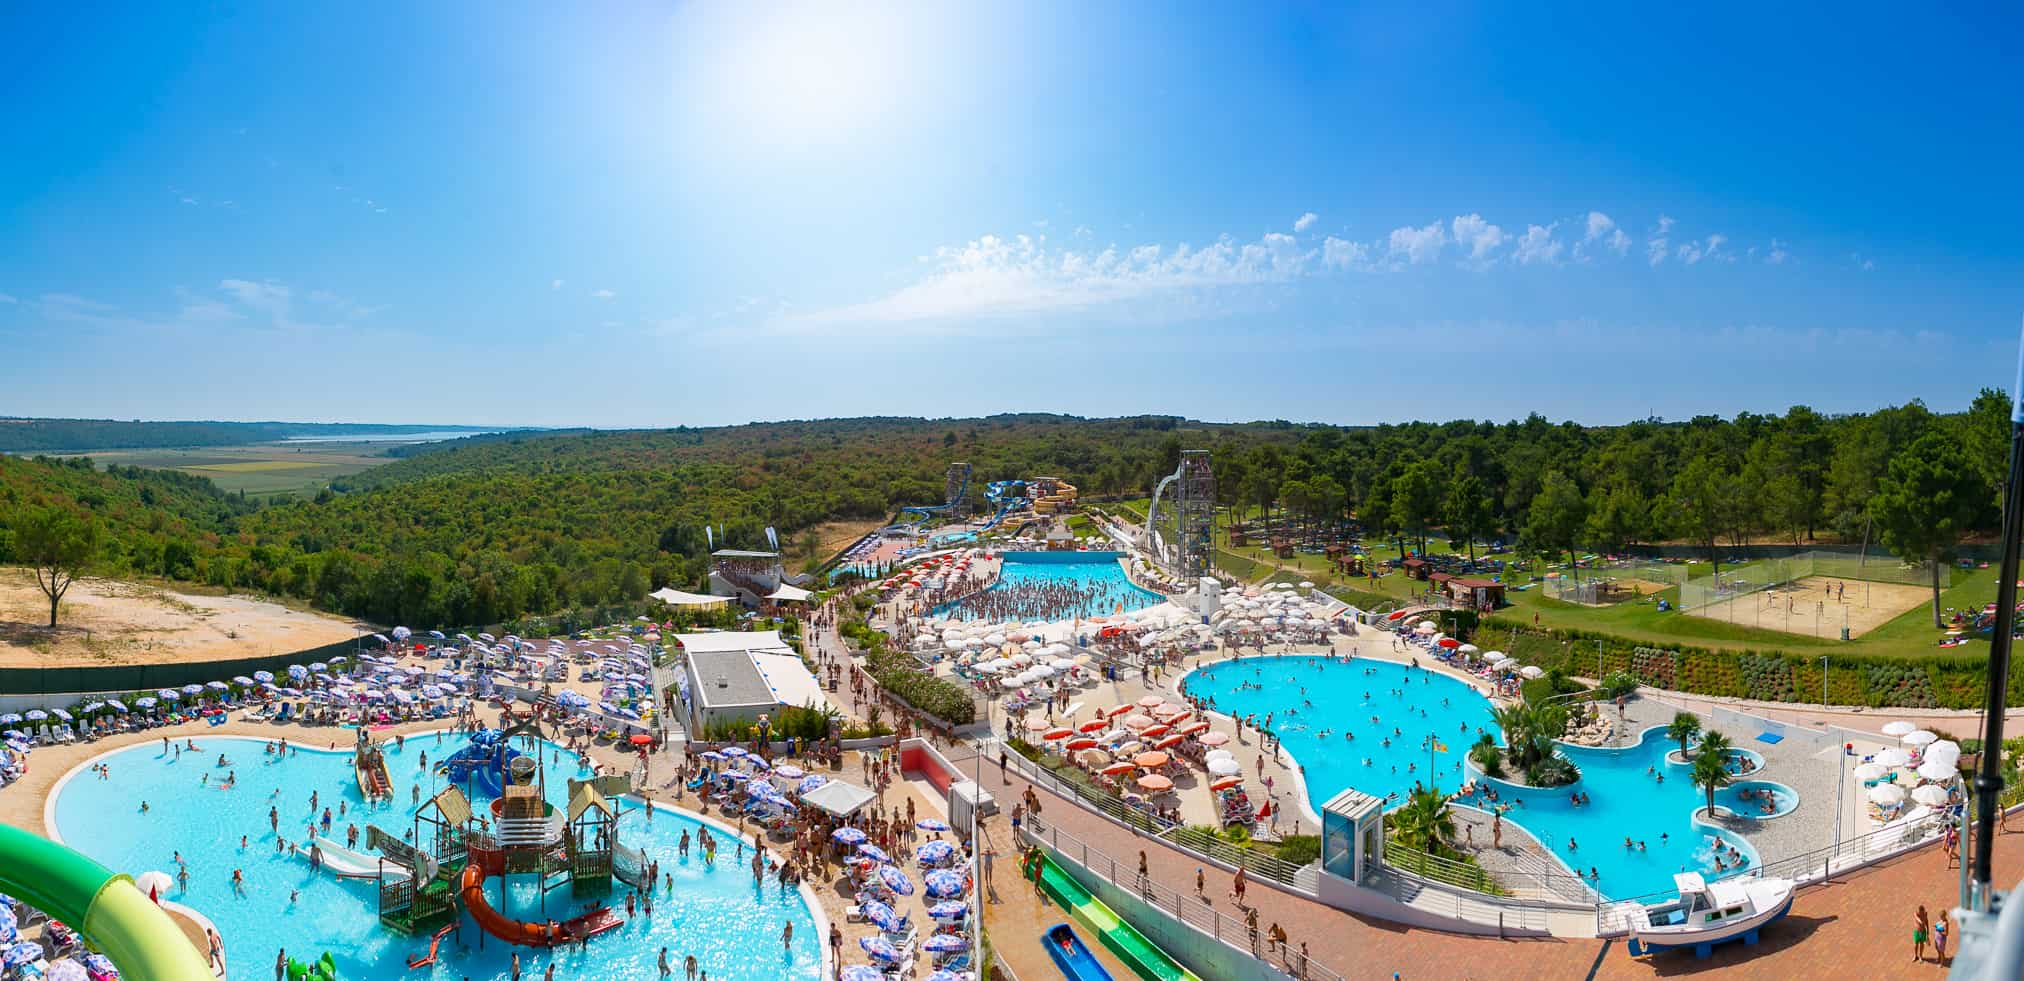 Aquapark Istralandia - Croatia With Kids